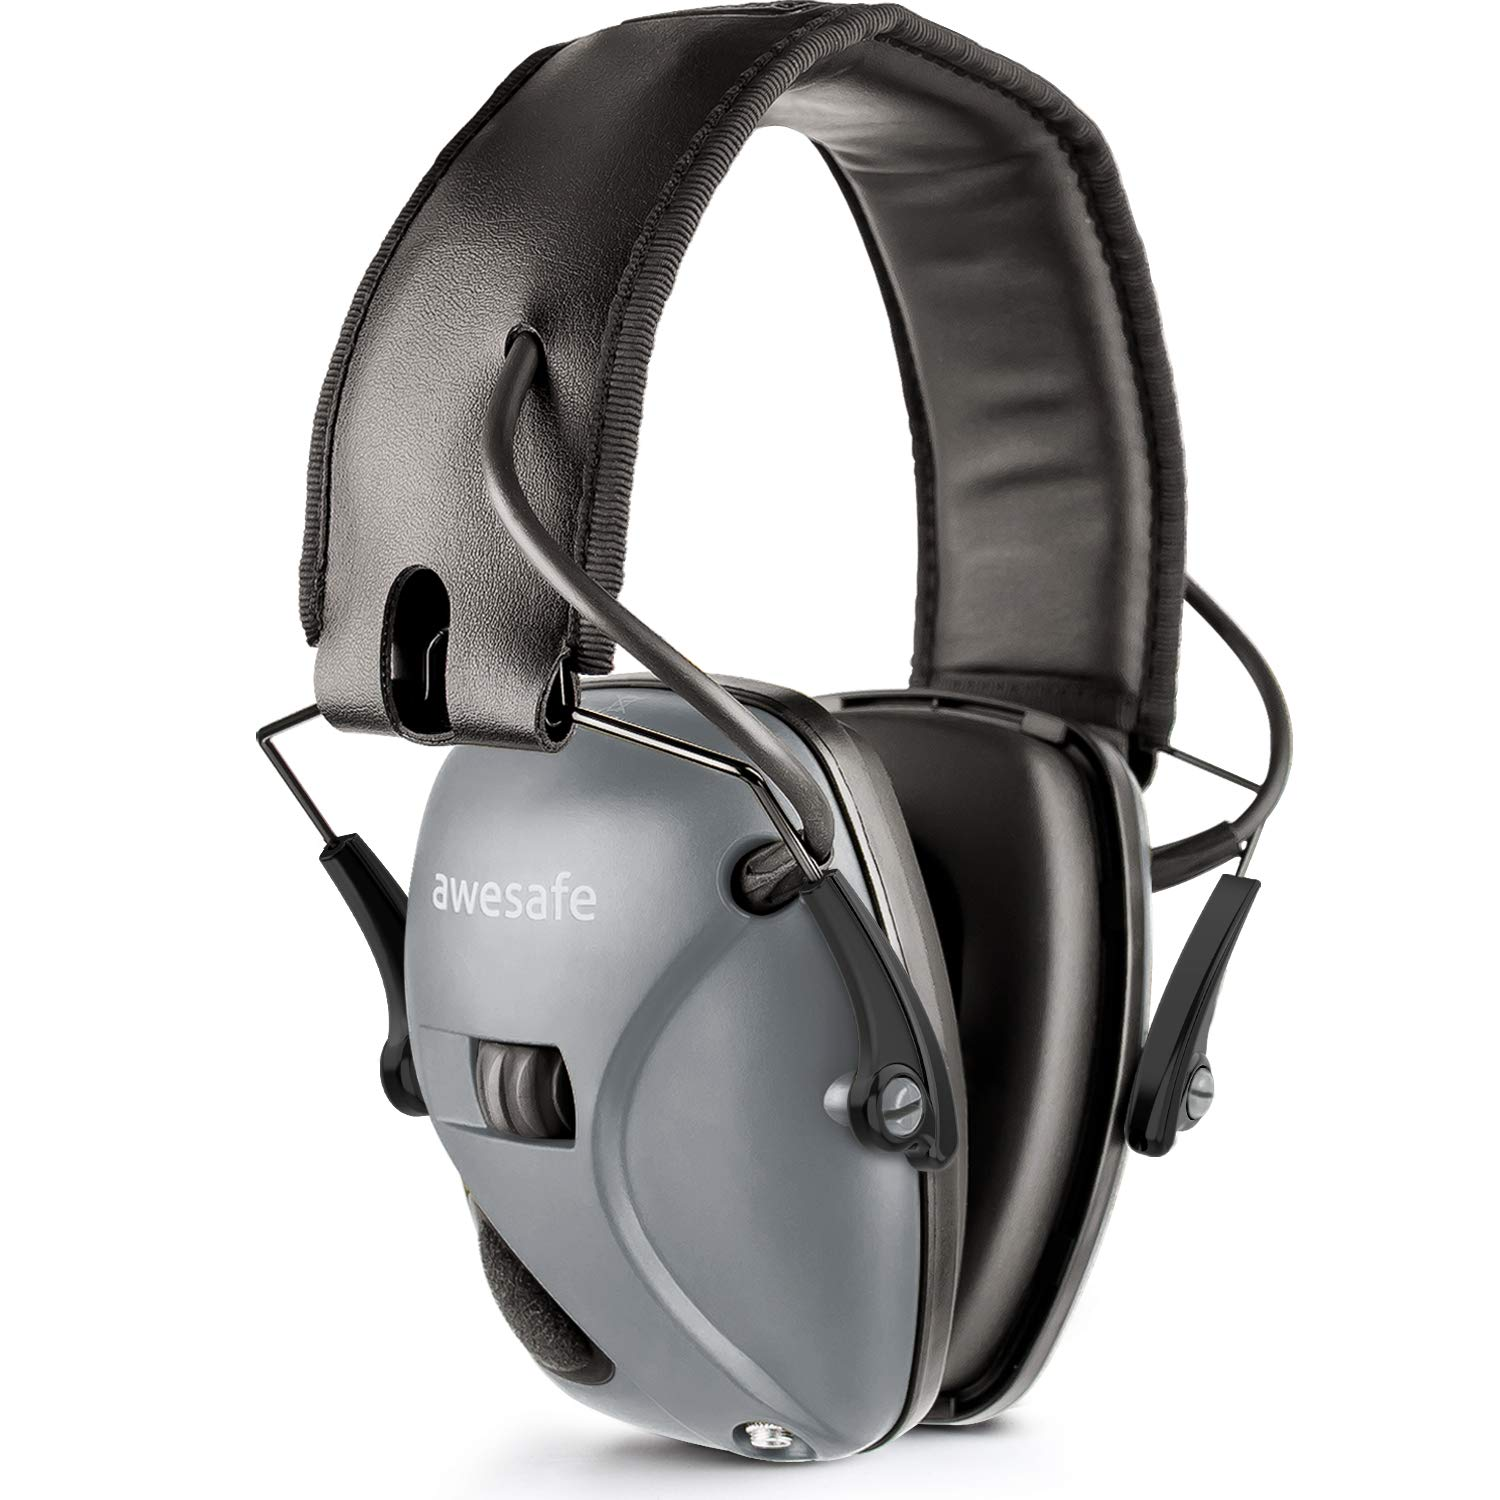 AWESAFE Electronic Shooting Earmuff, GF01 Noise Reduction Sound Amplification Electronic Safety Ear Muffs, Ear Protection, NRR 22 dB, Ideal for Shooting and Hunting, Grey …